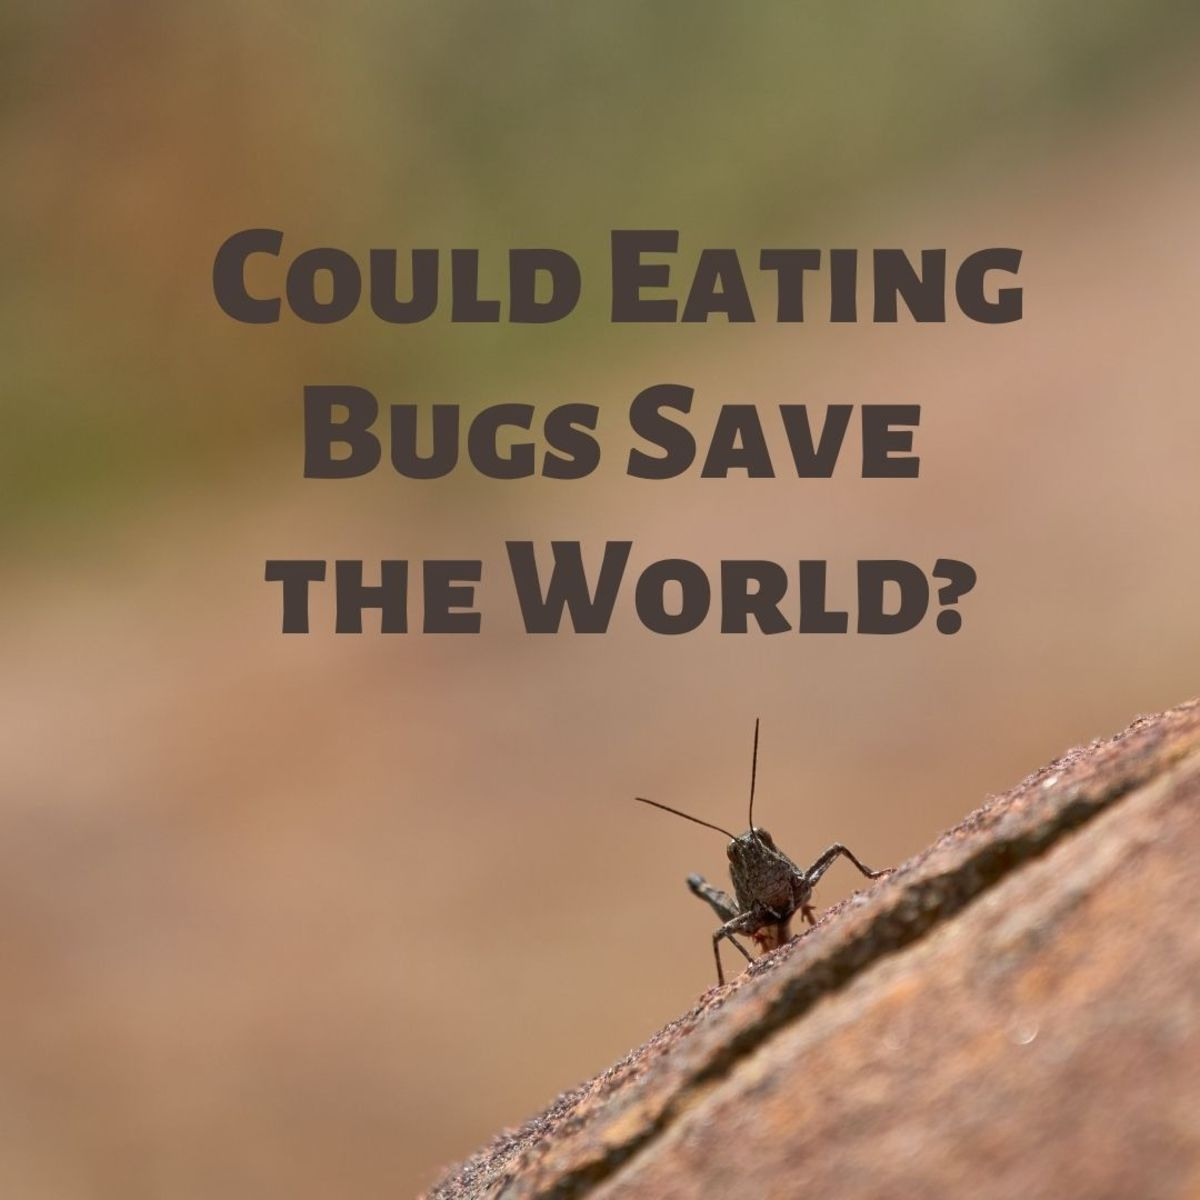 Plenty of people around the world eat bugs on a regular basis—maybe you should give it a try!